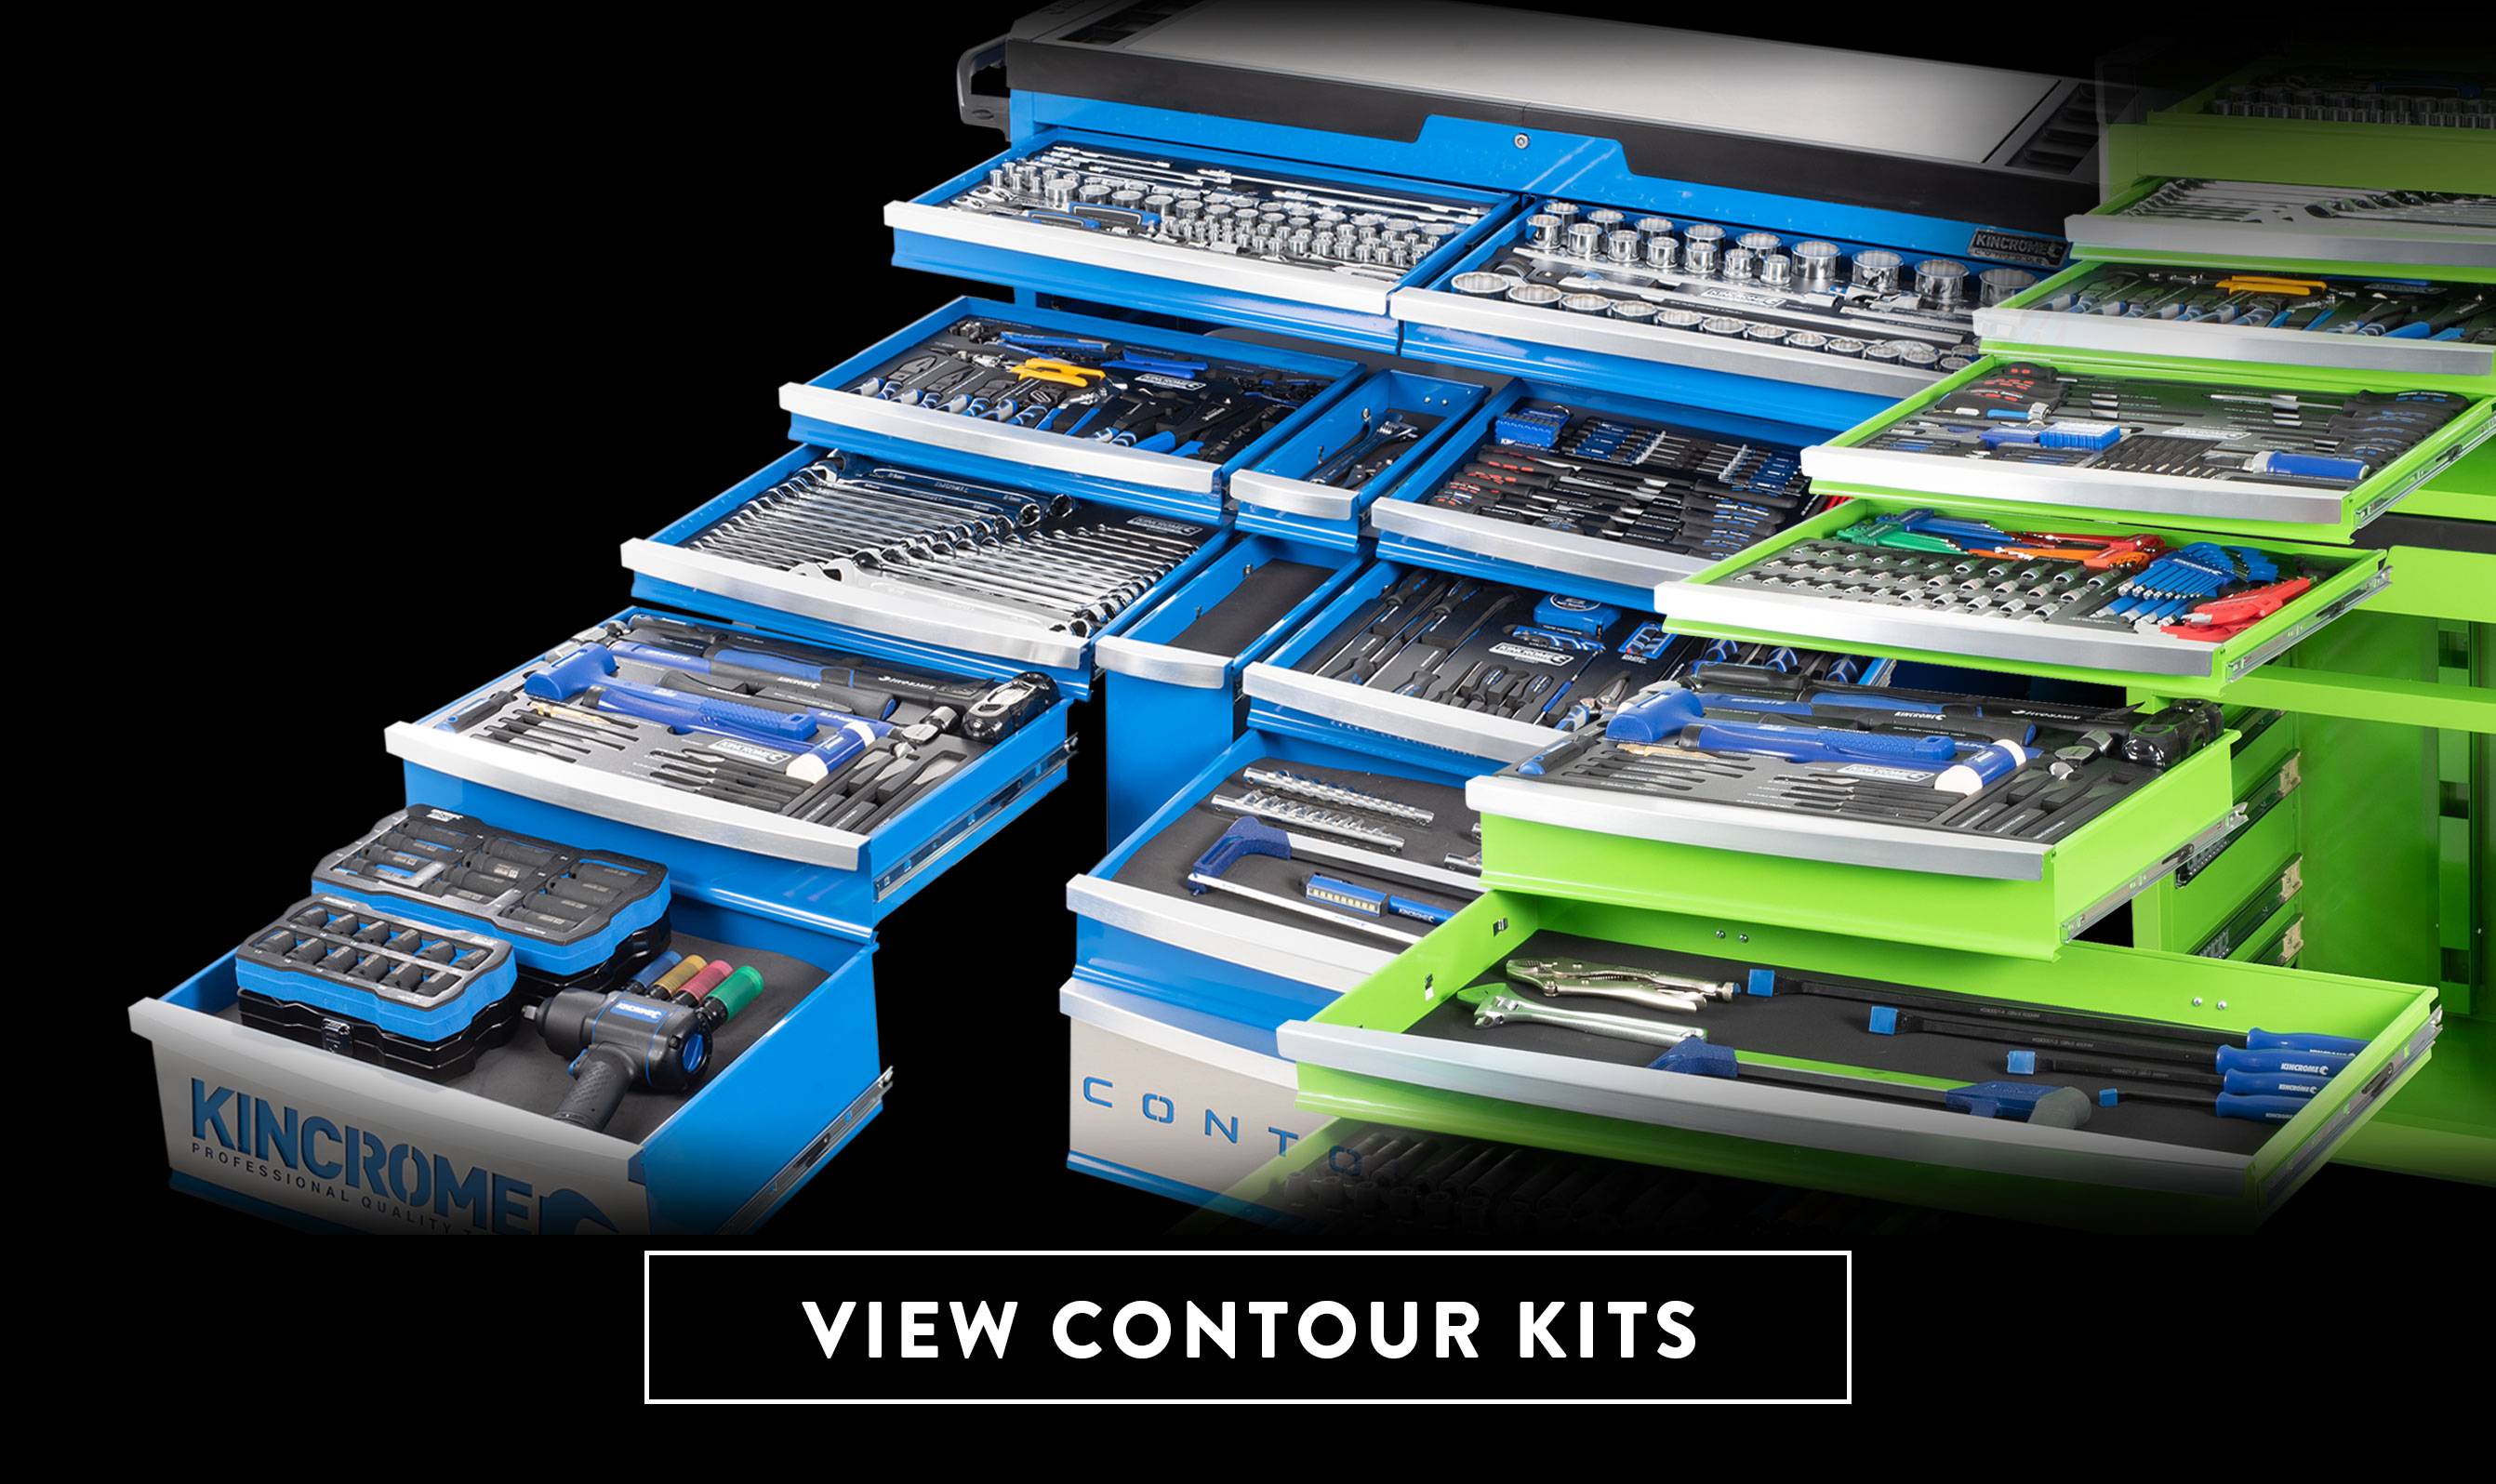 "Designed in Australia by Kincrome, the curved range of Contour® tool chests and trolleys have market leading features. Including multiple colours of blue, green, orange and yellow. Select from 10 different tool kit options to suit your needs, ranging in sizes from 29"" to 60""."